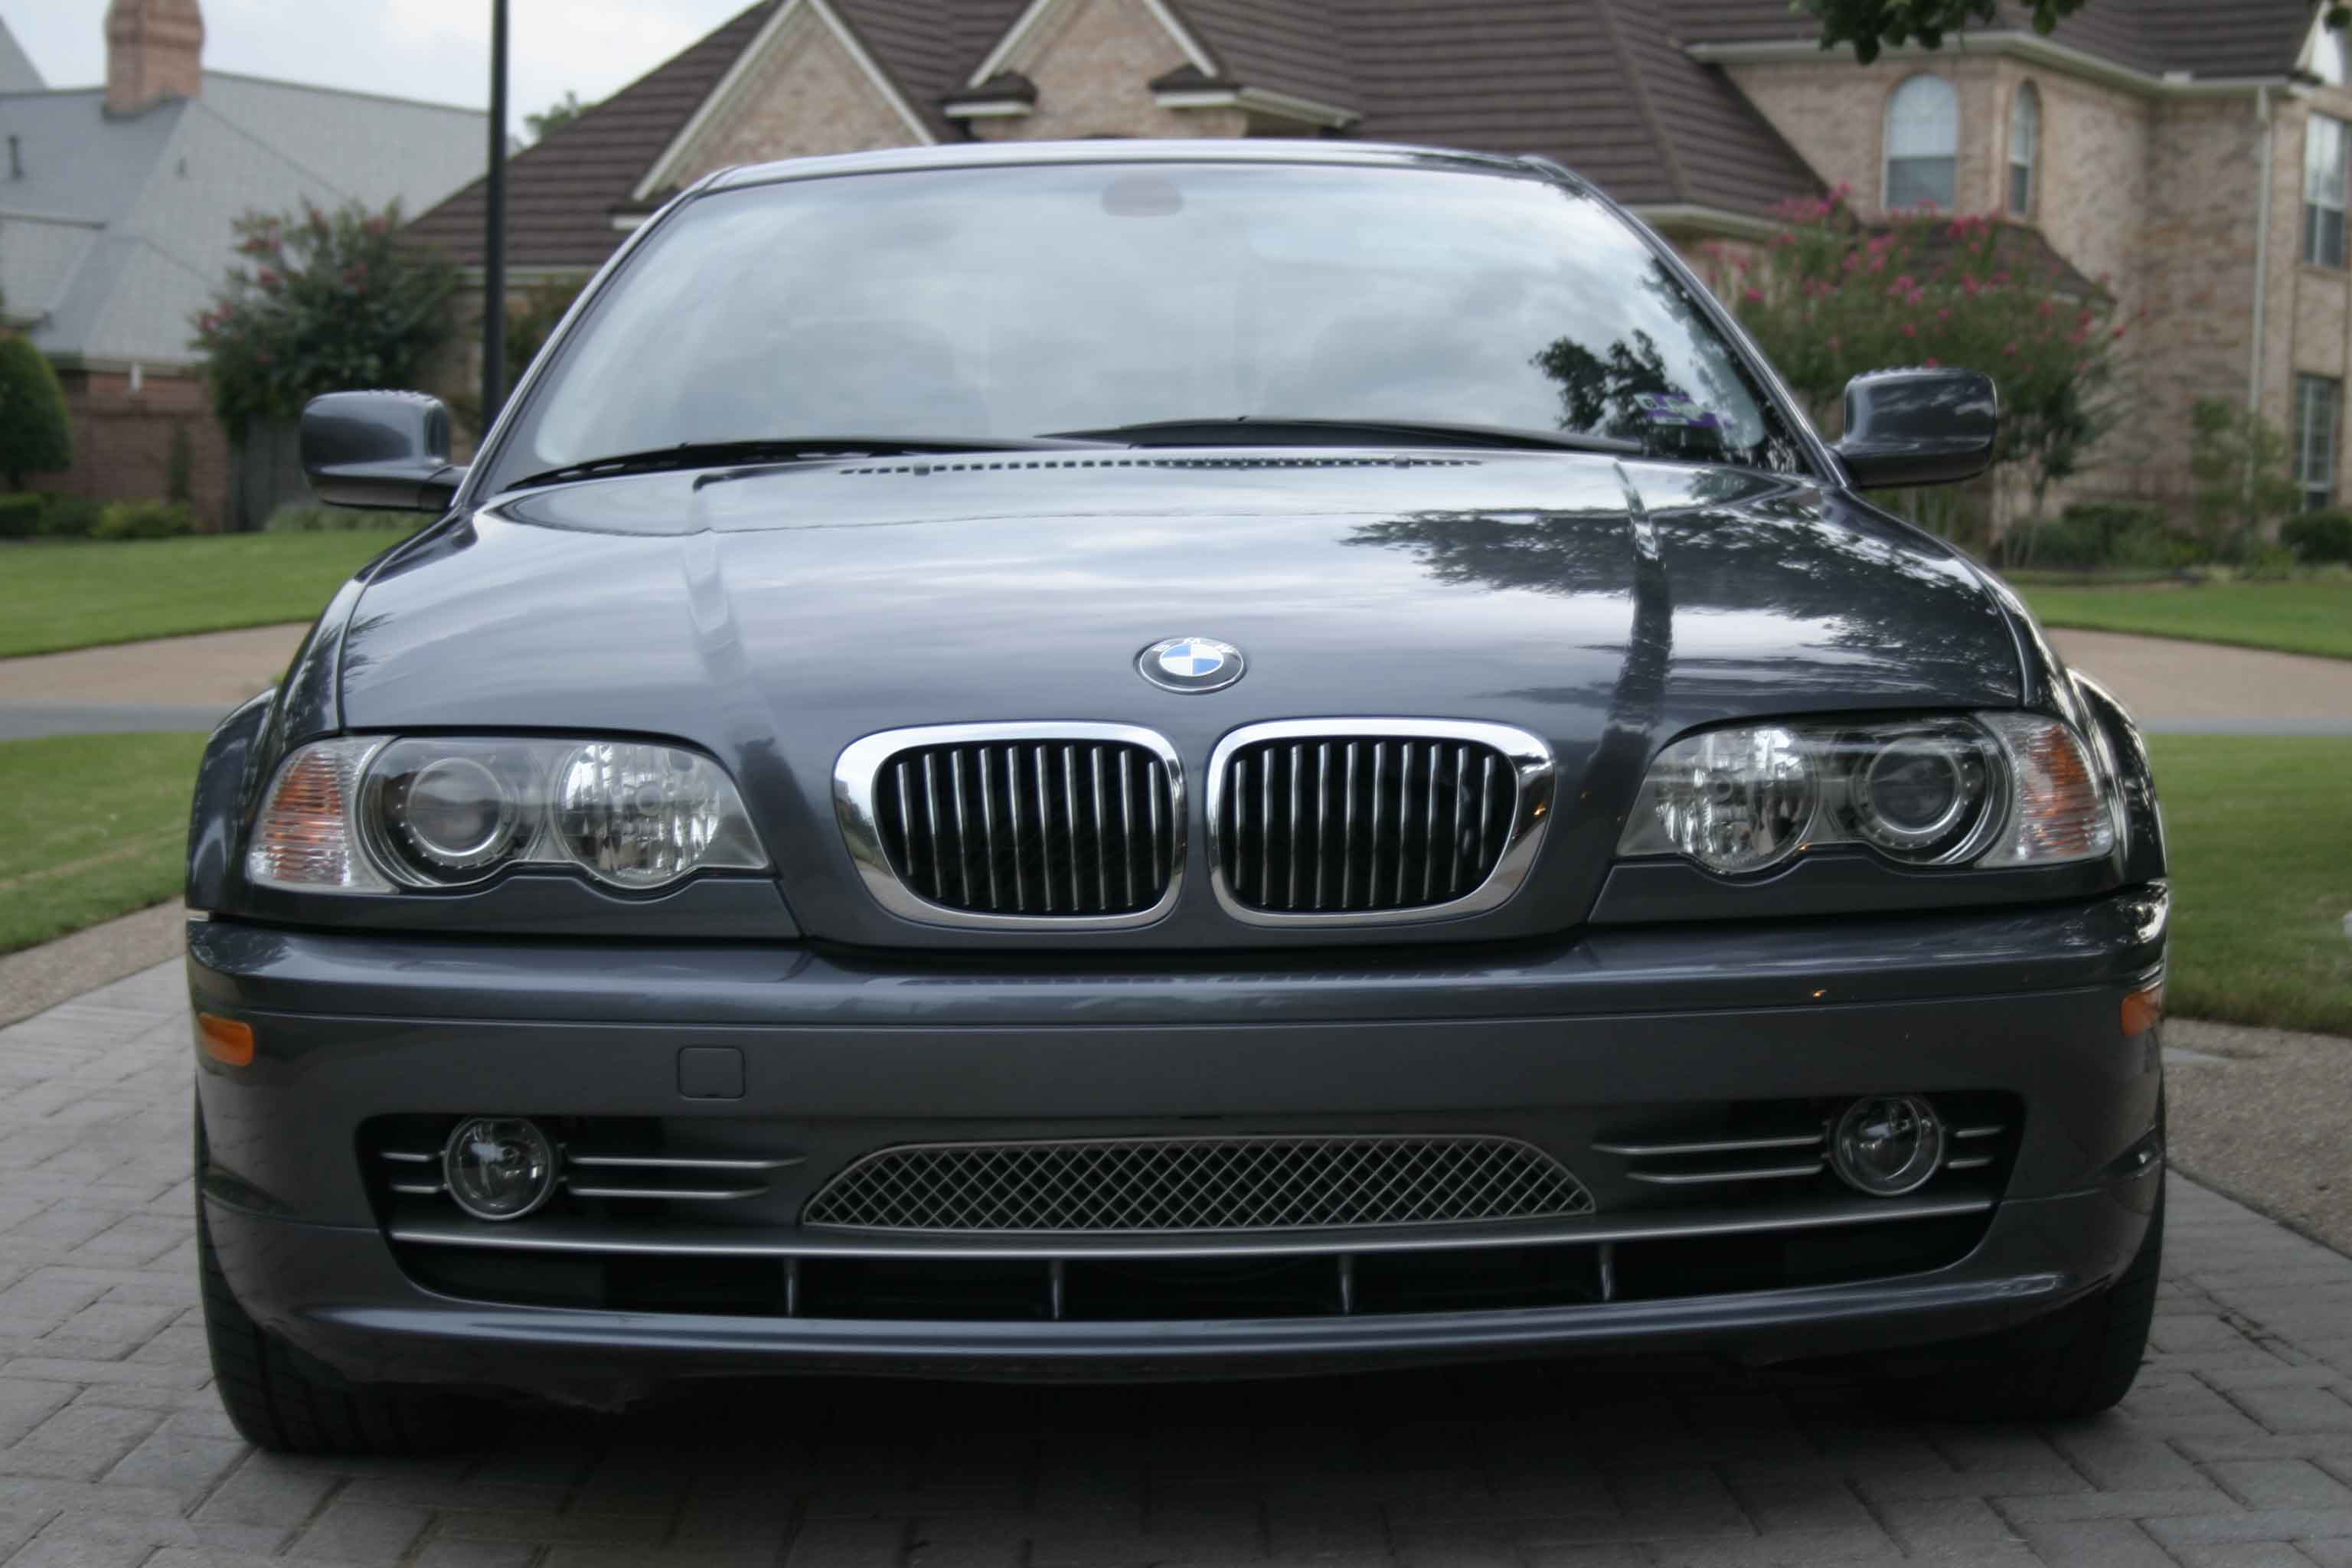 2004 bmw 330ci starter location 2003 bmw 330xi starter